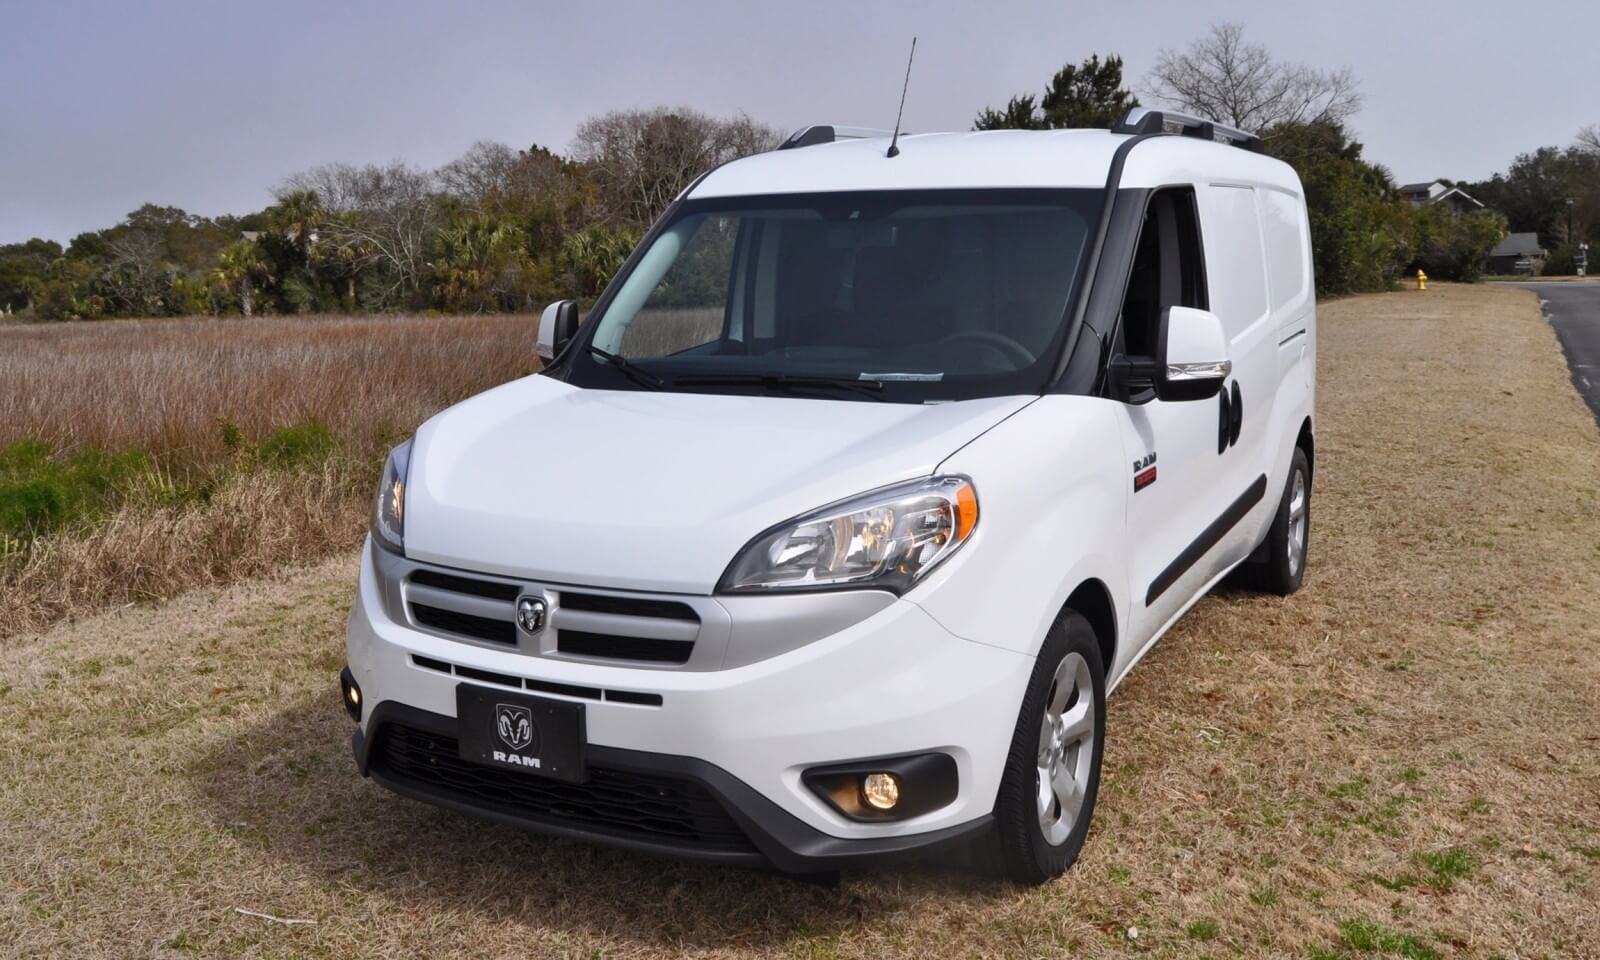 used ram promaster city for sale cargurus autos post. Black Bedroom Furniture Sets. Home Design Ideas